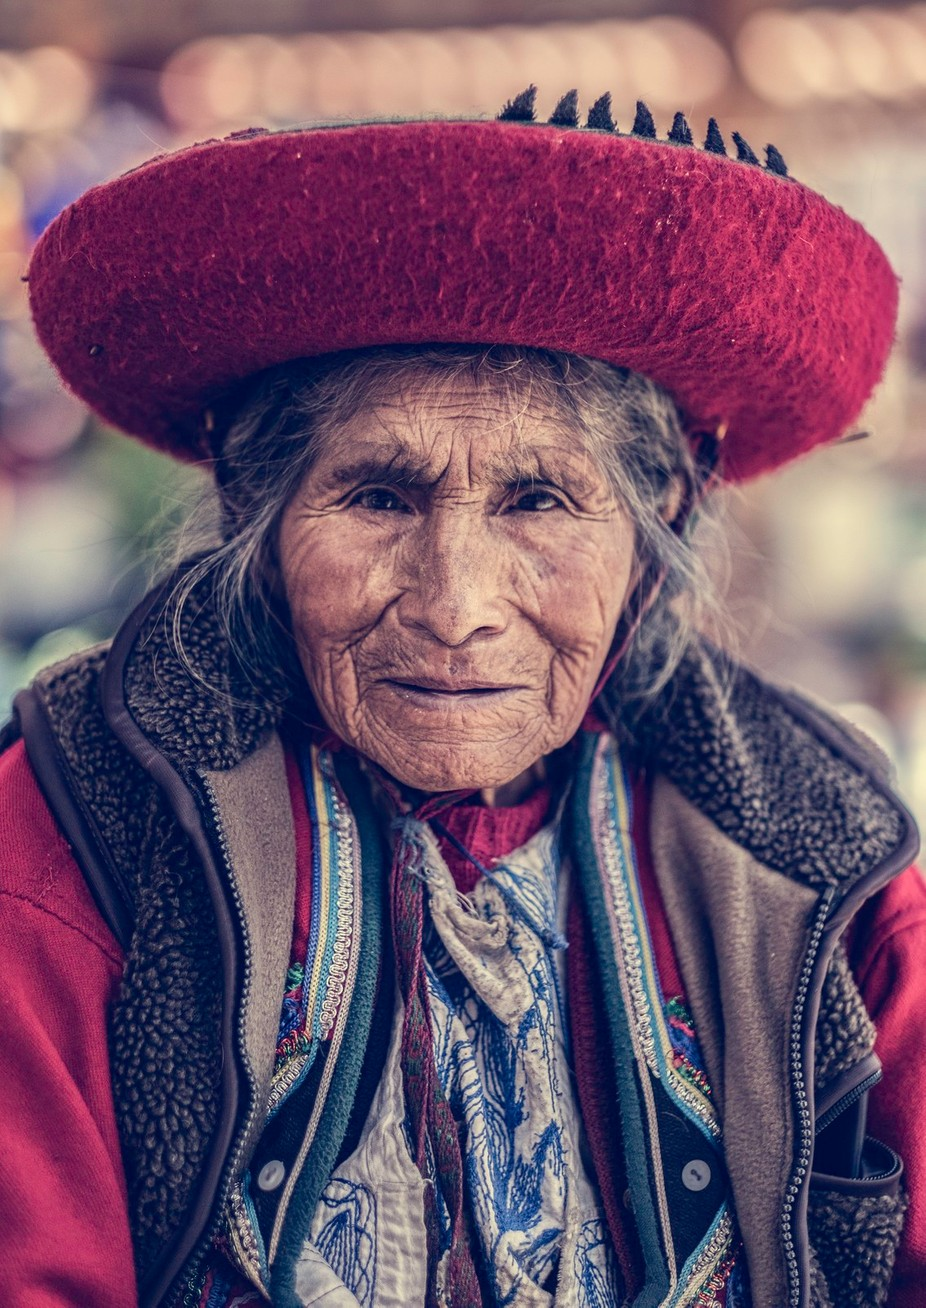 chinchero market lady by pedropulido - Everything Bokeh Photo Contest